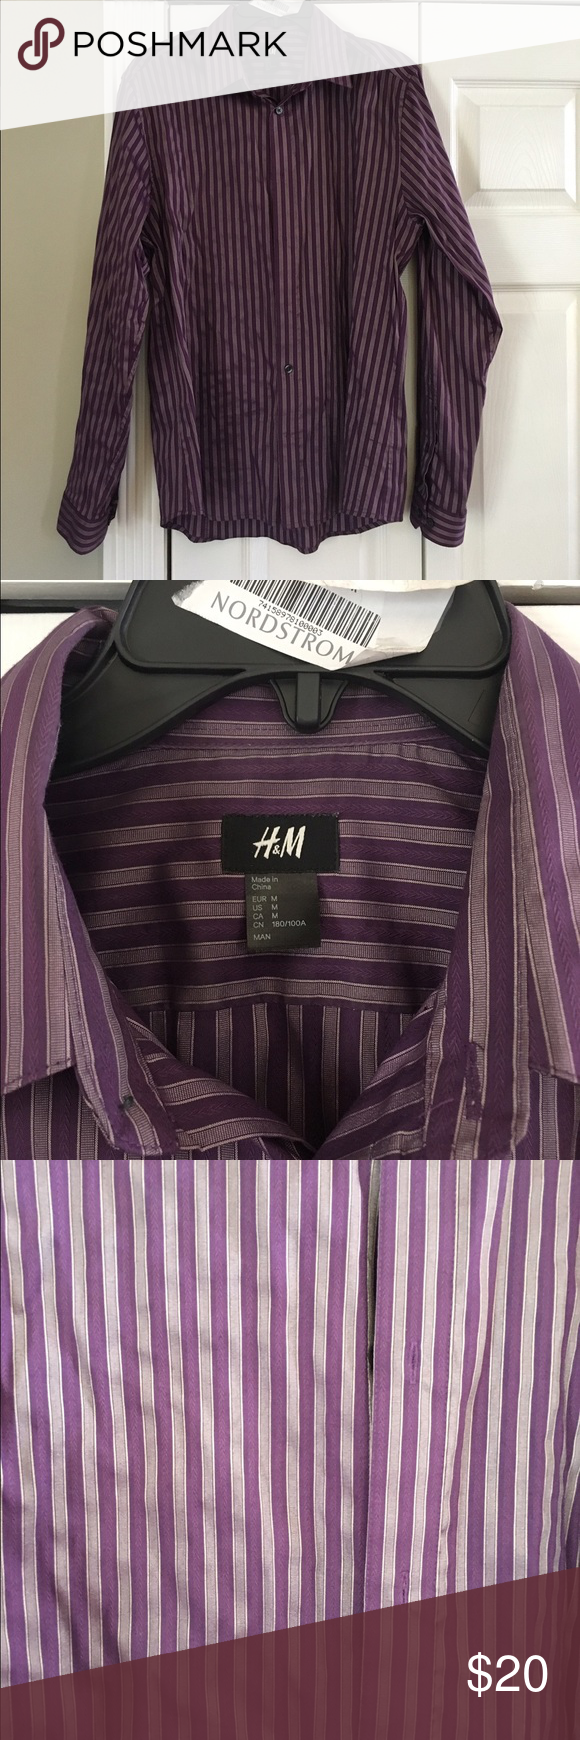 H&M dress shirt H&M dress shirt with pinstripe in purple. Worn 3-4 times. Clean no damages or stains. Comes from pet free and smoke free home. Size medium. Very nice cut for men H&M Shirts